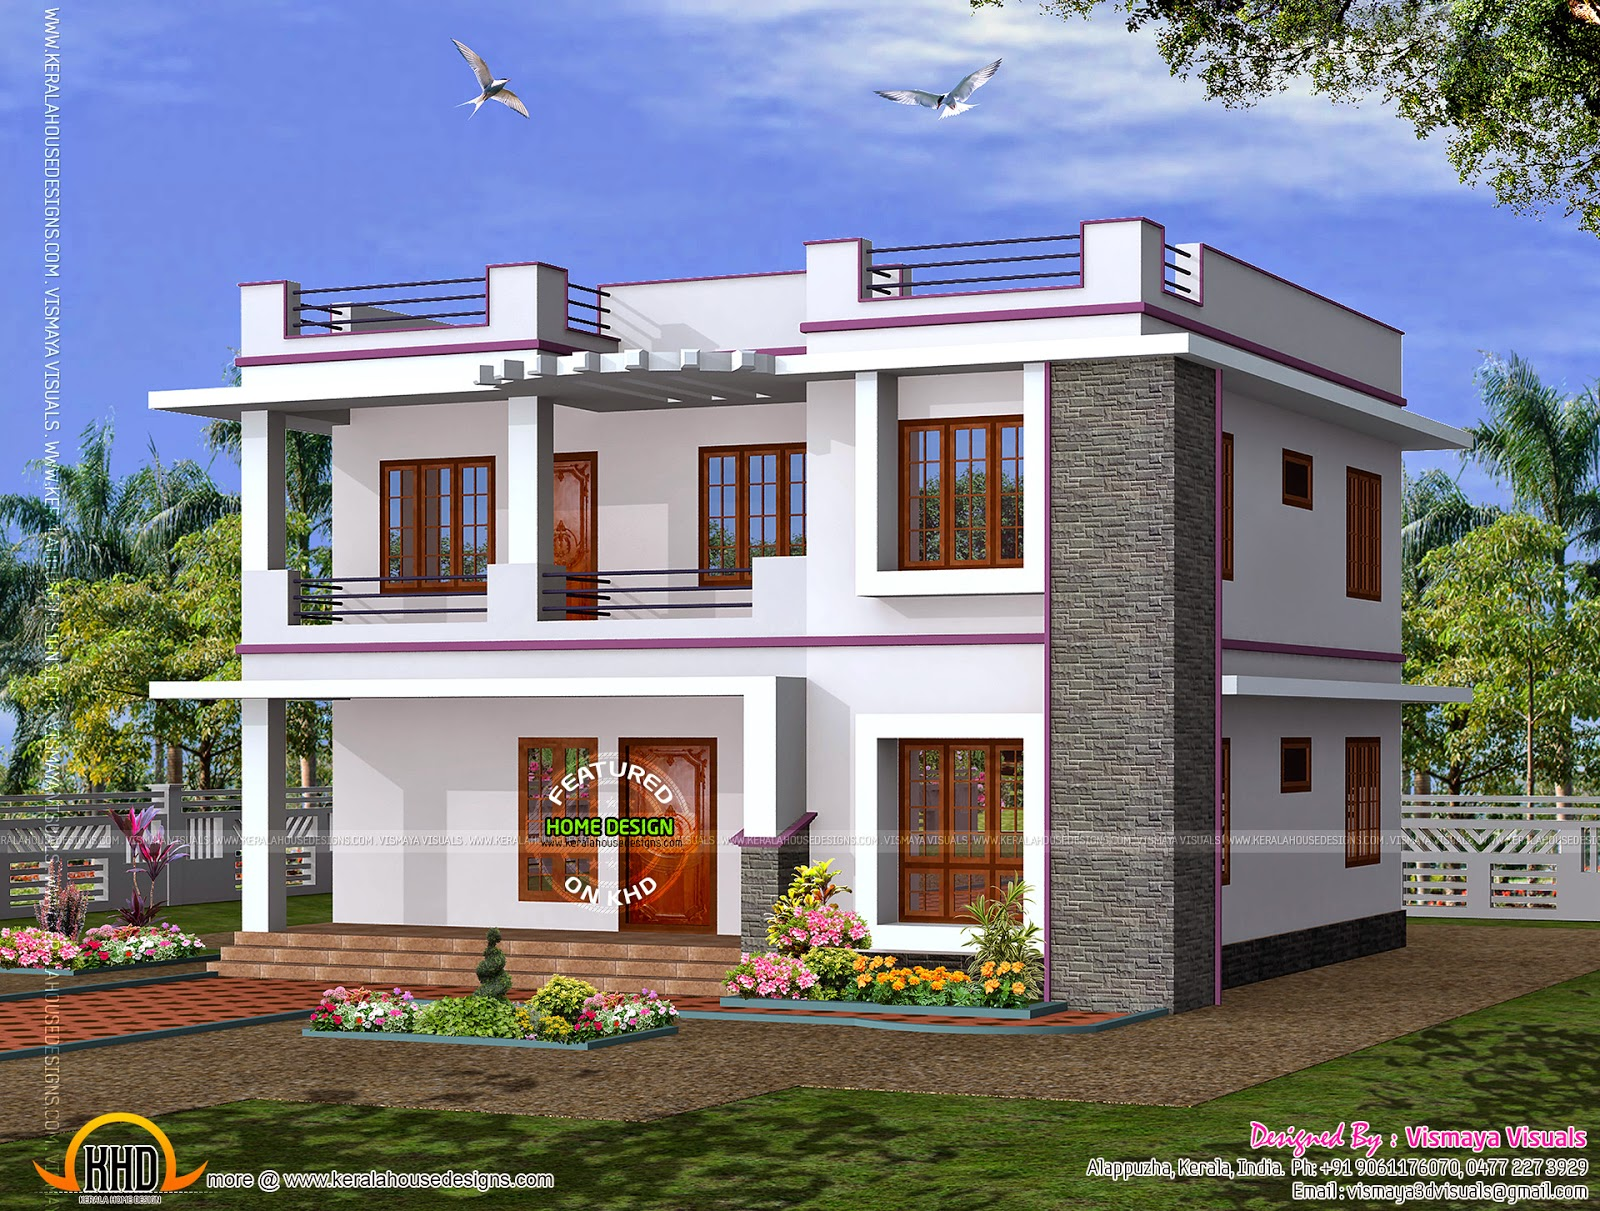 Awesome Alappuzha Home Design